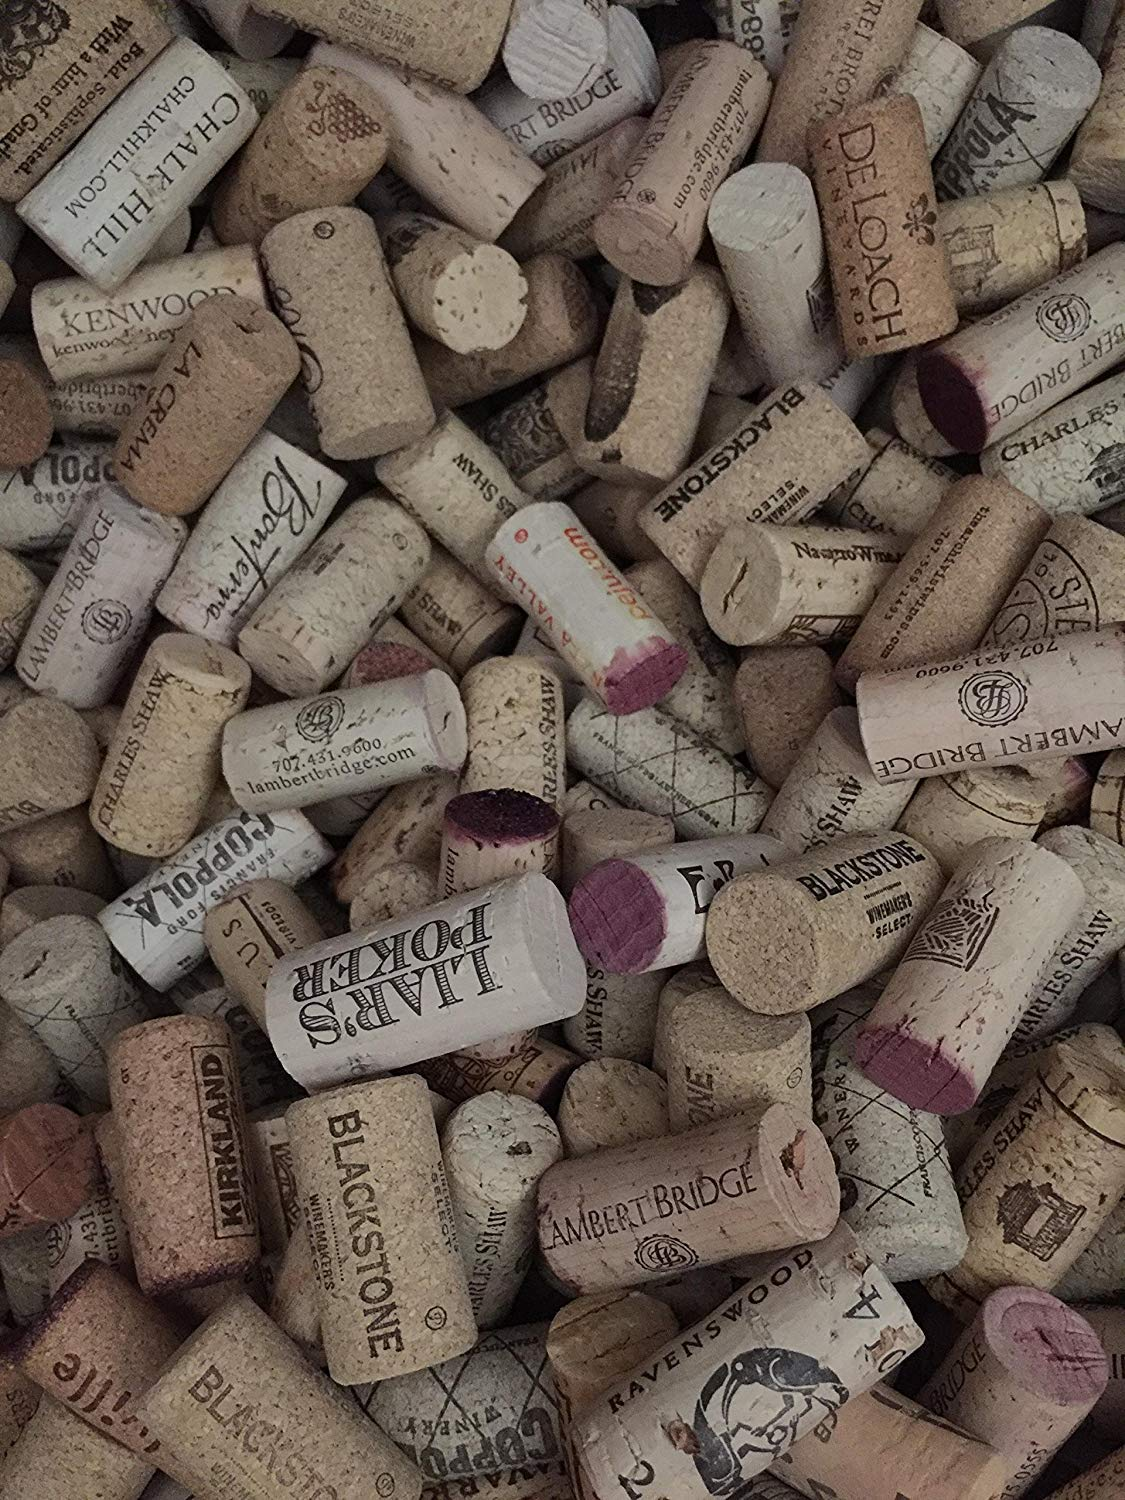 Includes Crafts Activity Sheet and Cork Cutting Instructions 250 Count Natural Wine Corks From Around the Us Best Variety 250 Count Premium Recycled Used Corks in Bulk